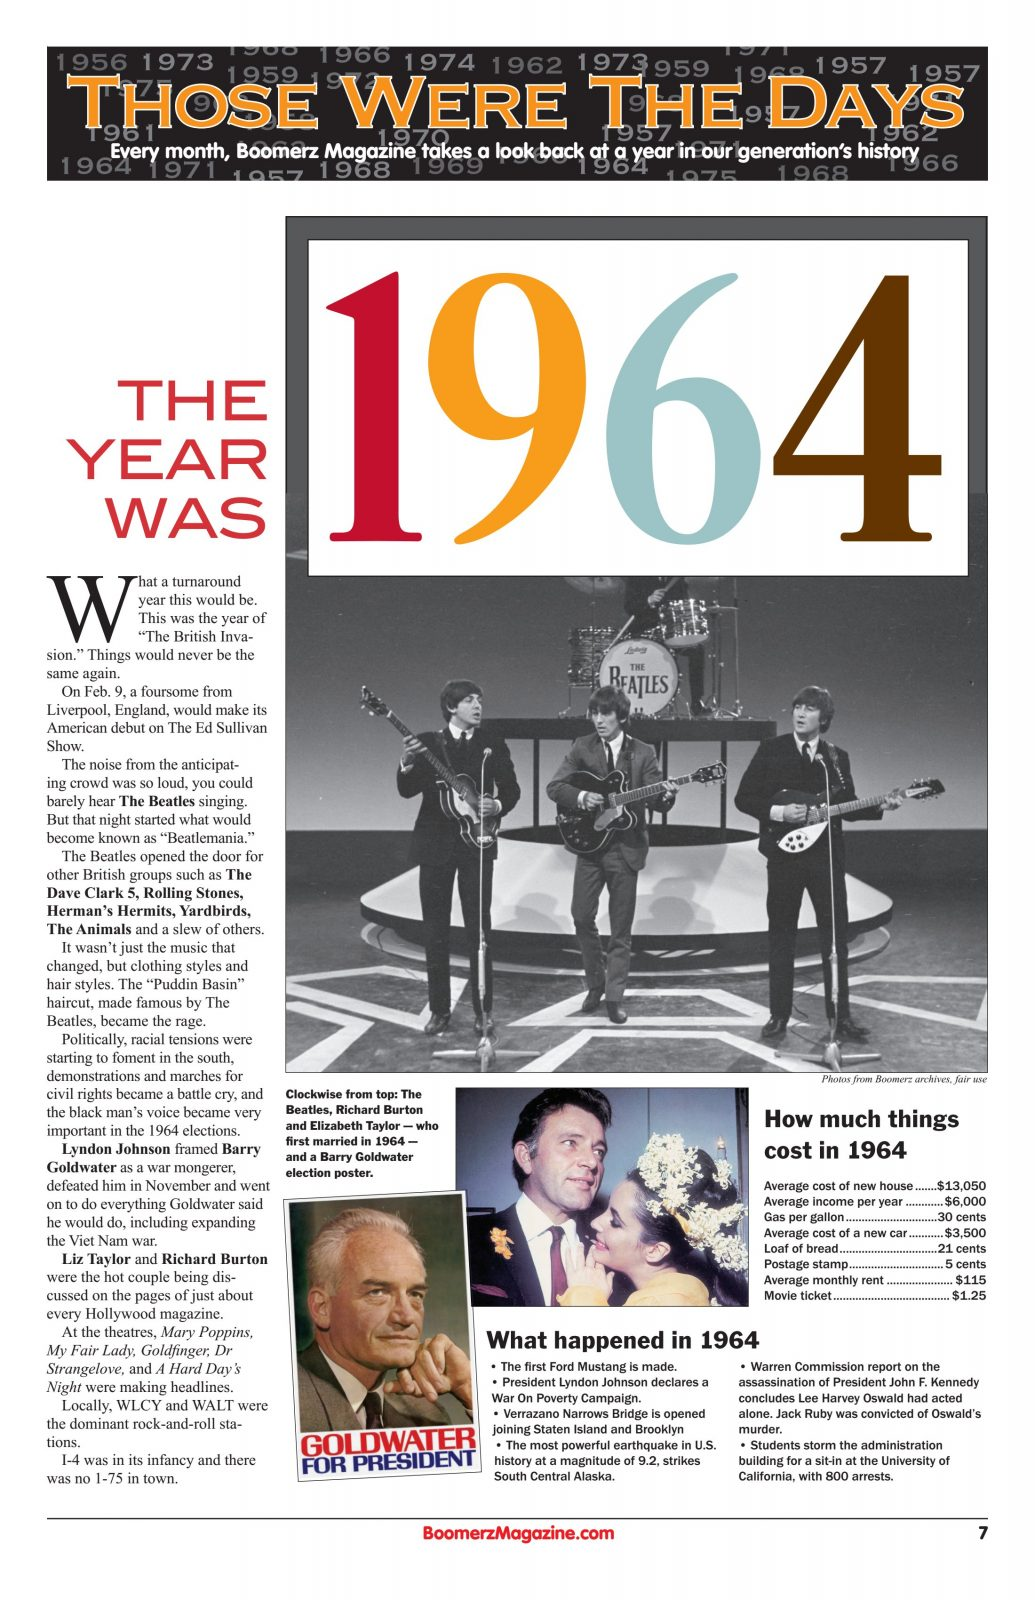 A look back at a year in our generations history year 1964